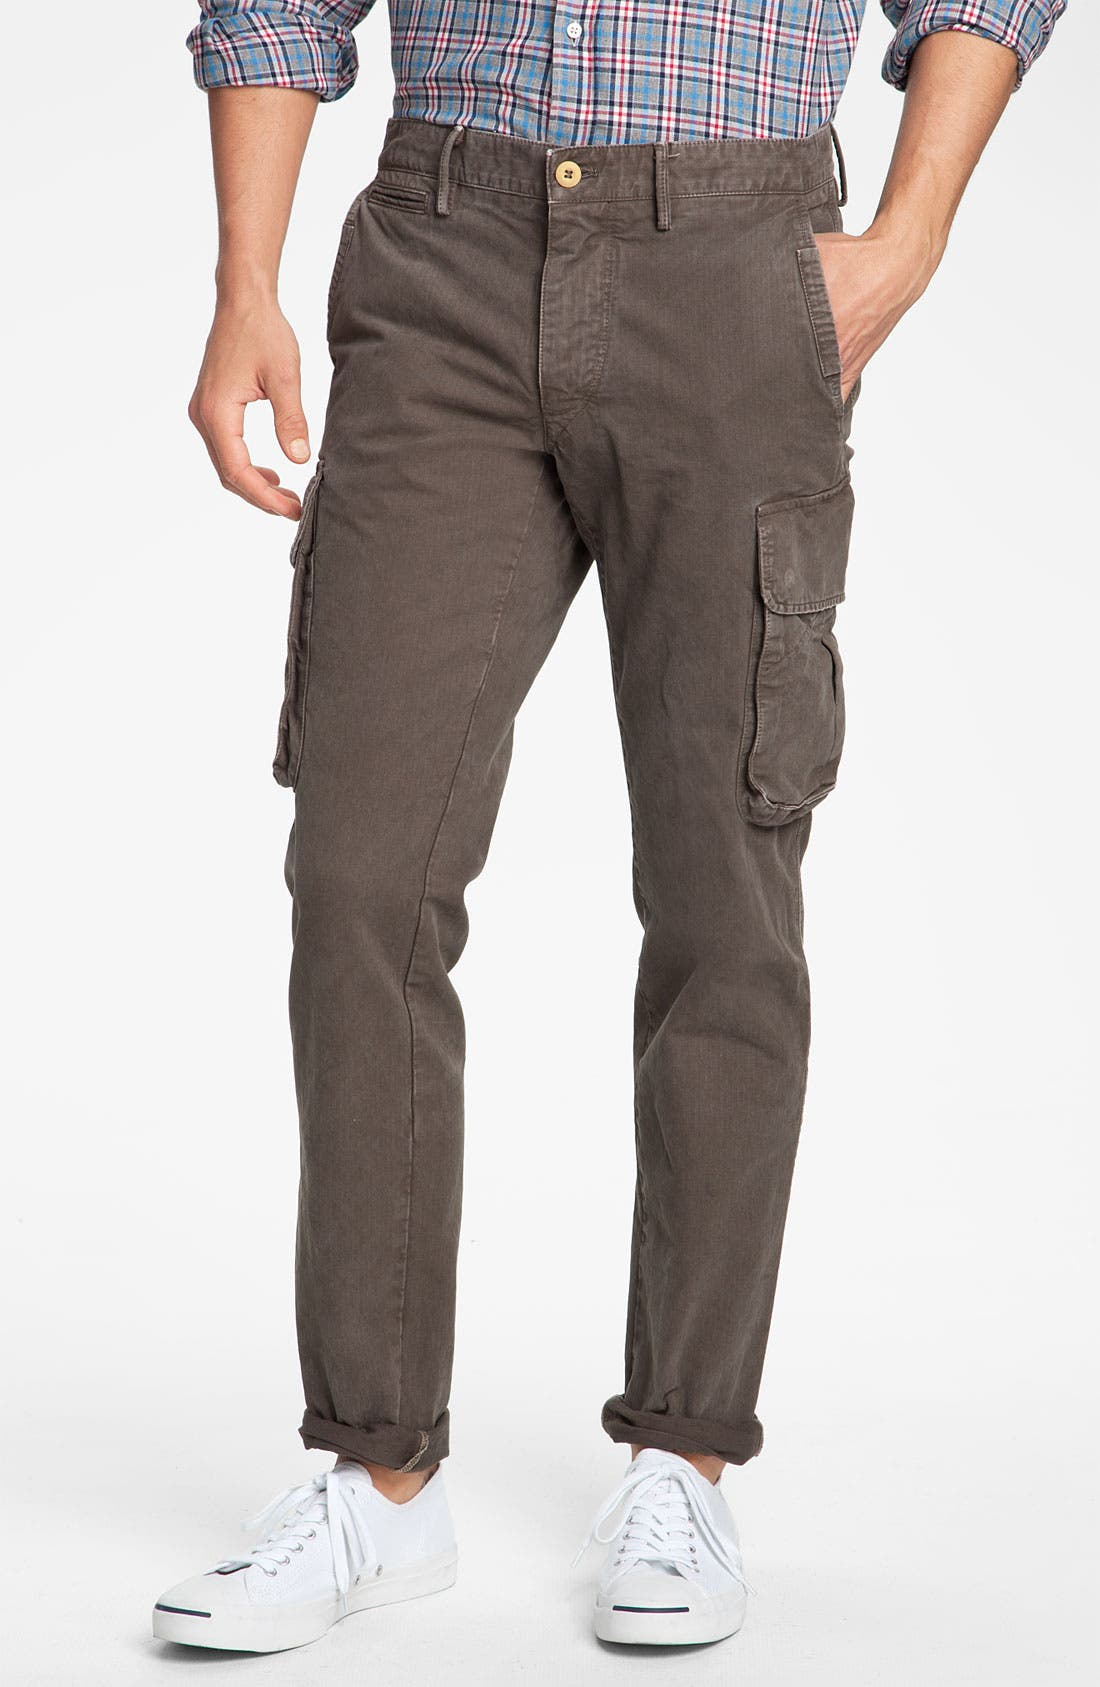 Main Image - Mason's Slim Fit Cargo Pants